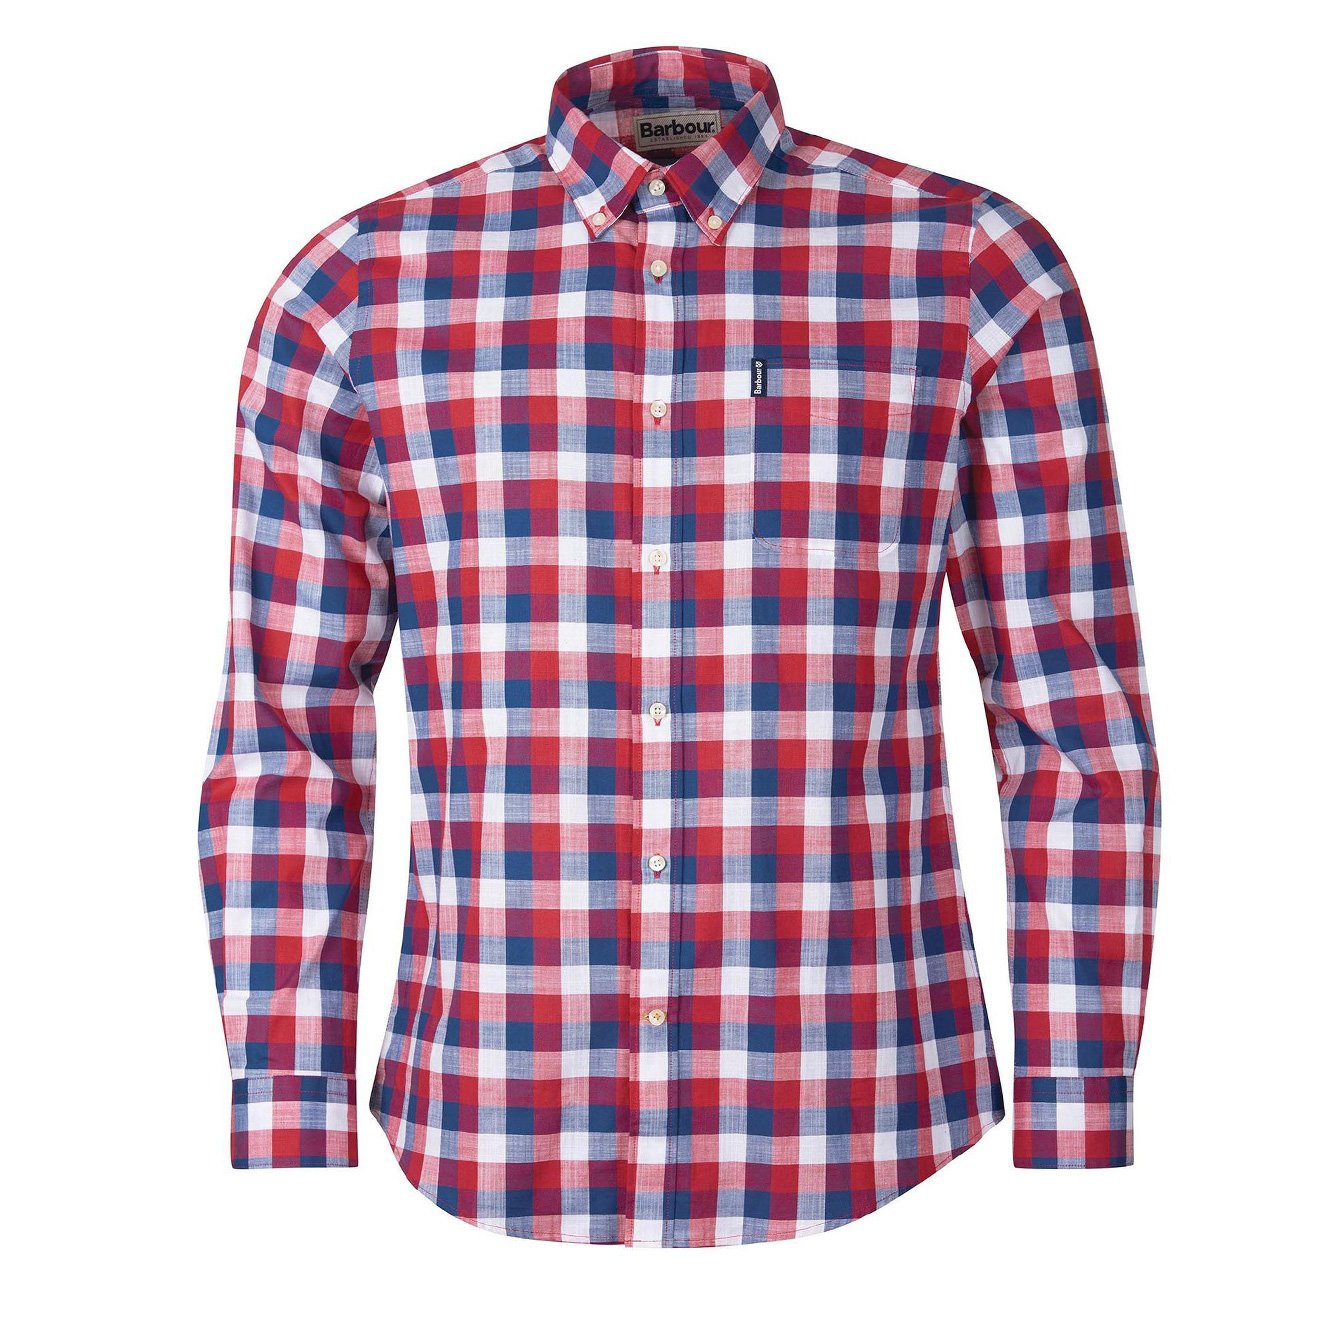 Barbour Shirts GINGHAM 25 TAILORED L/S SHIRT RED